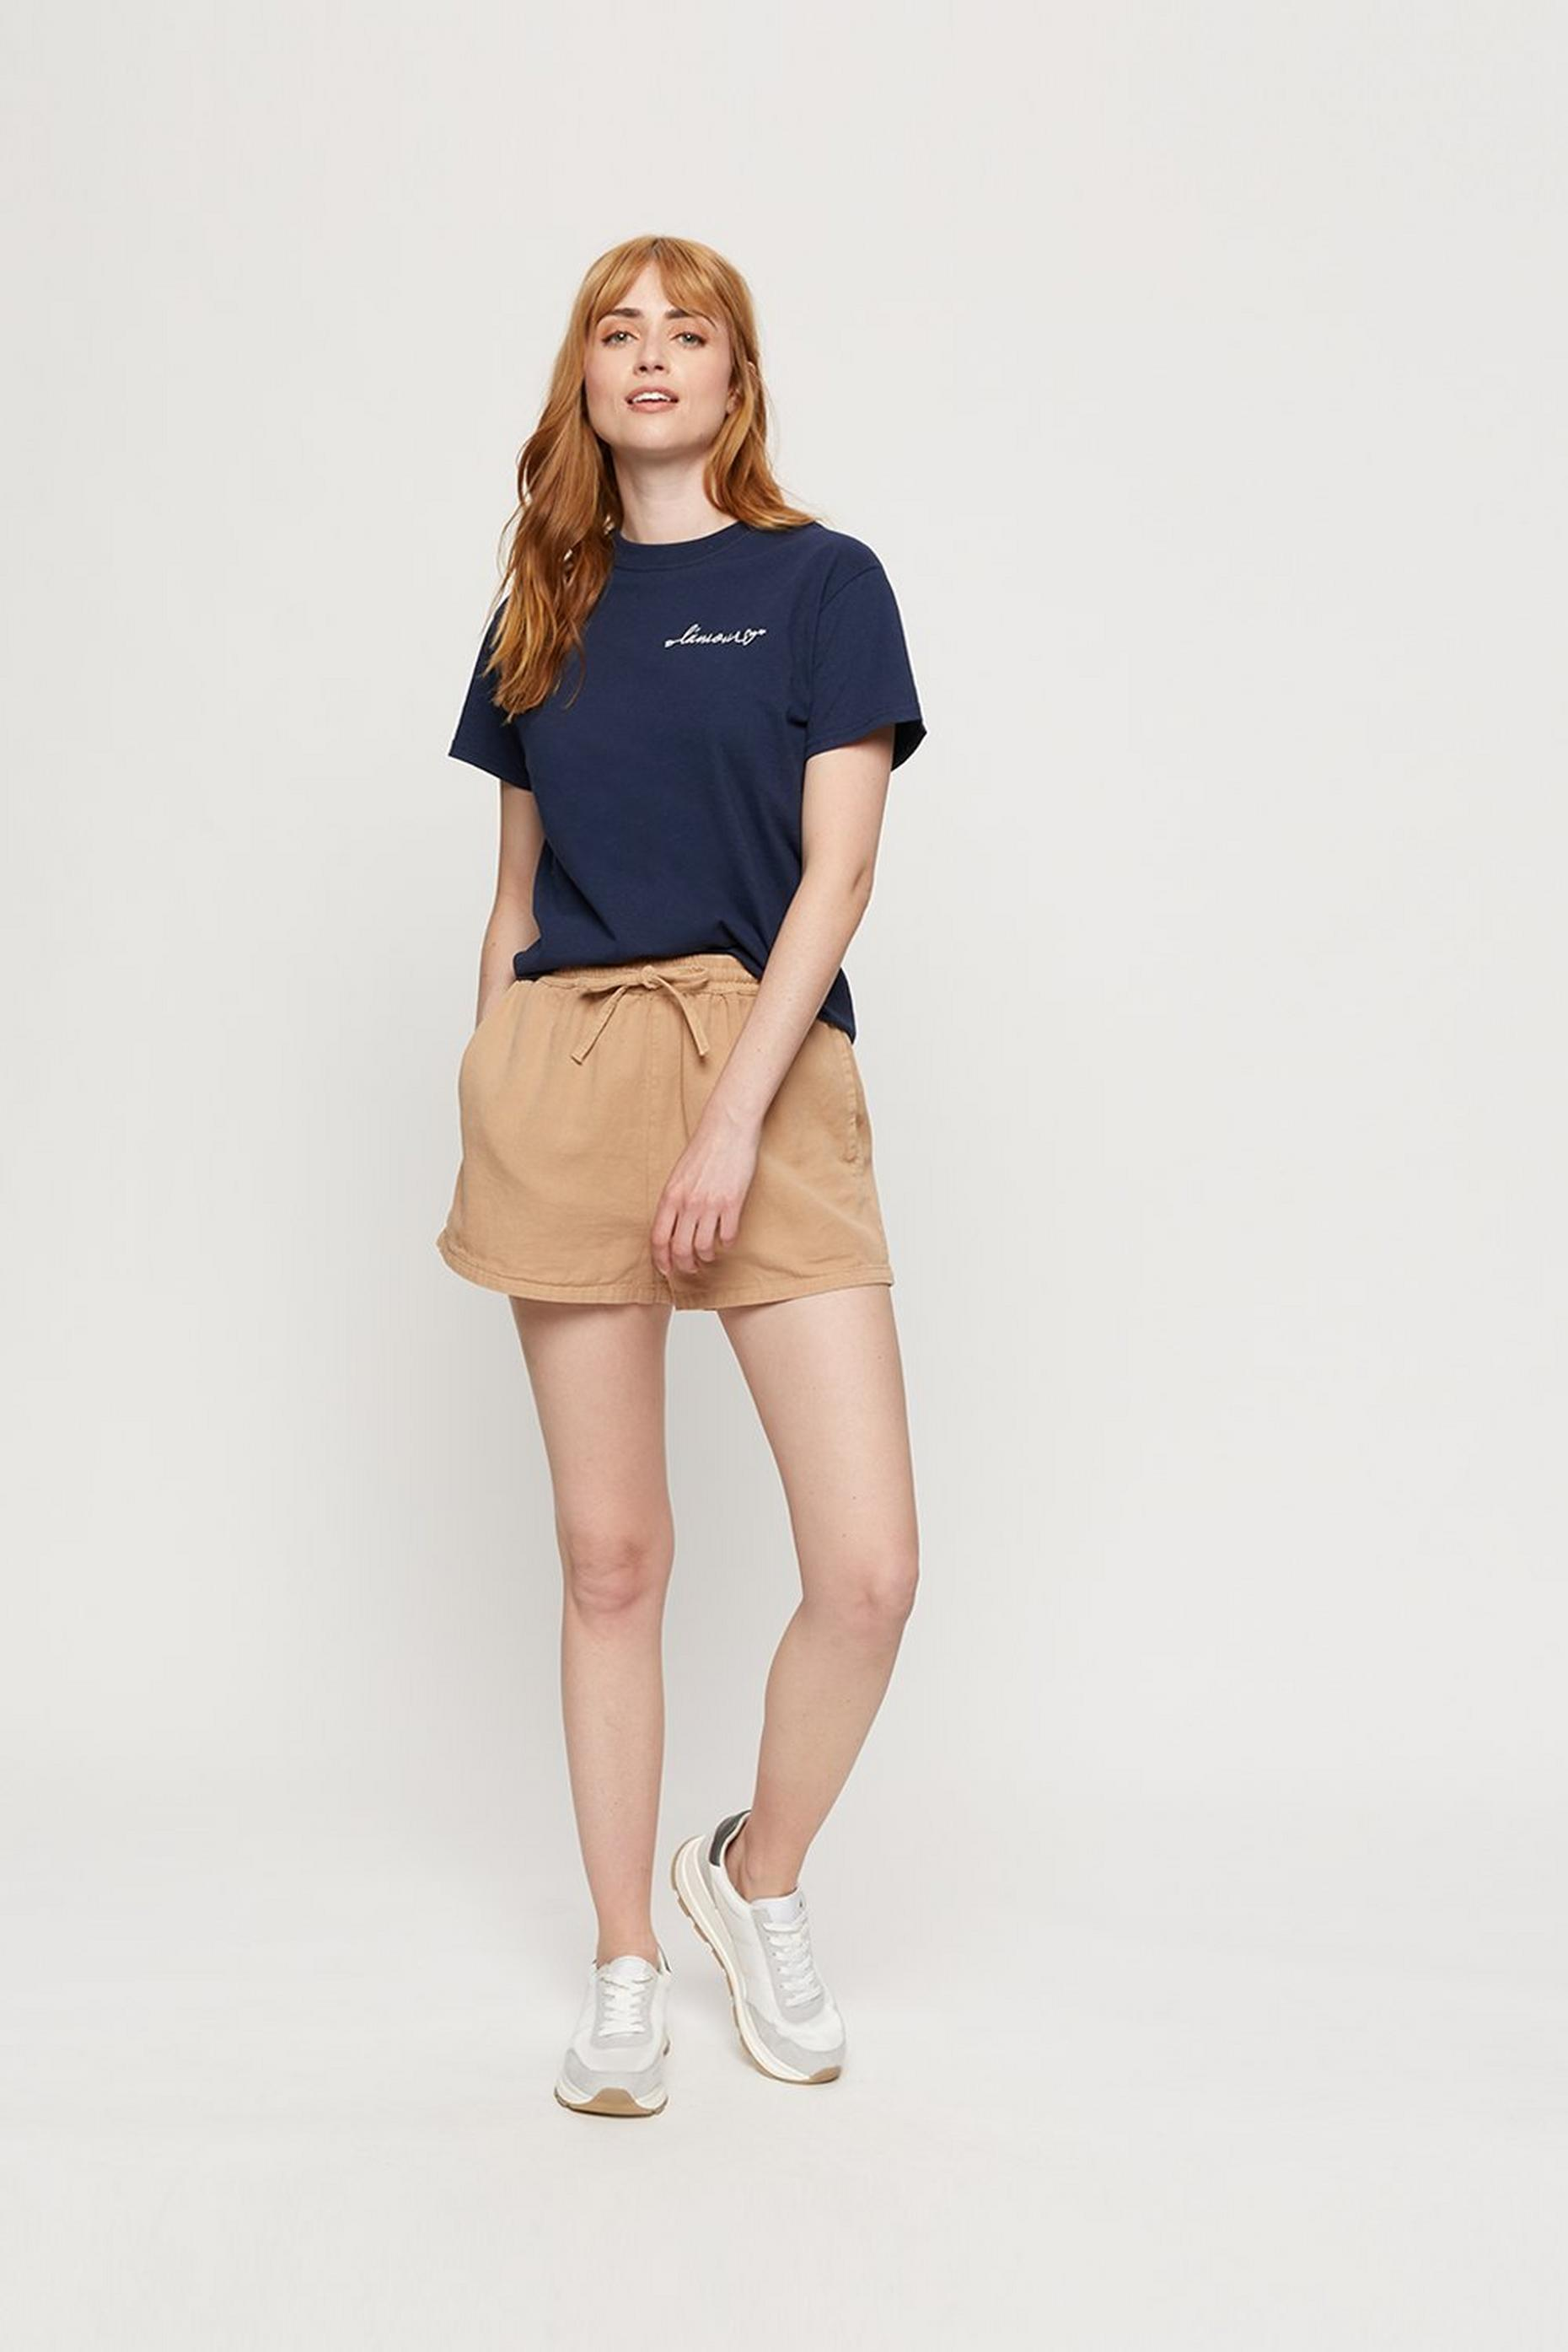 Navy L'amour Embroidered Logo T-shirt